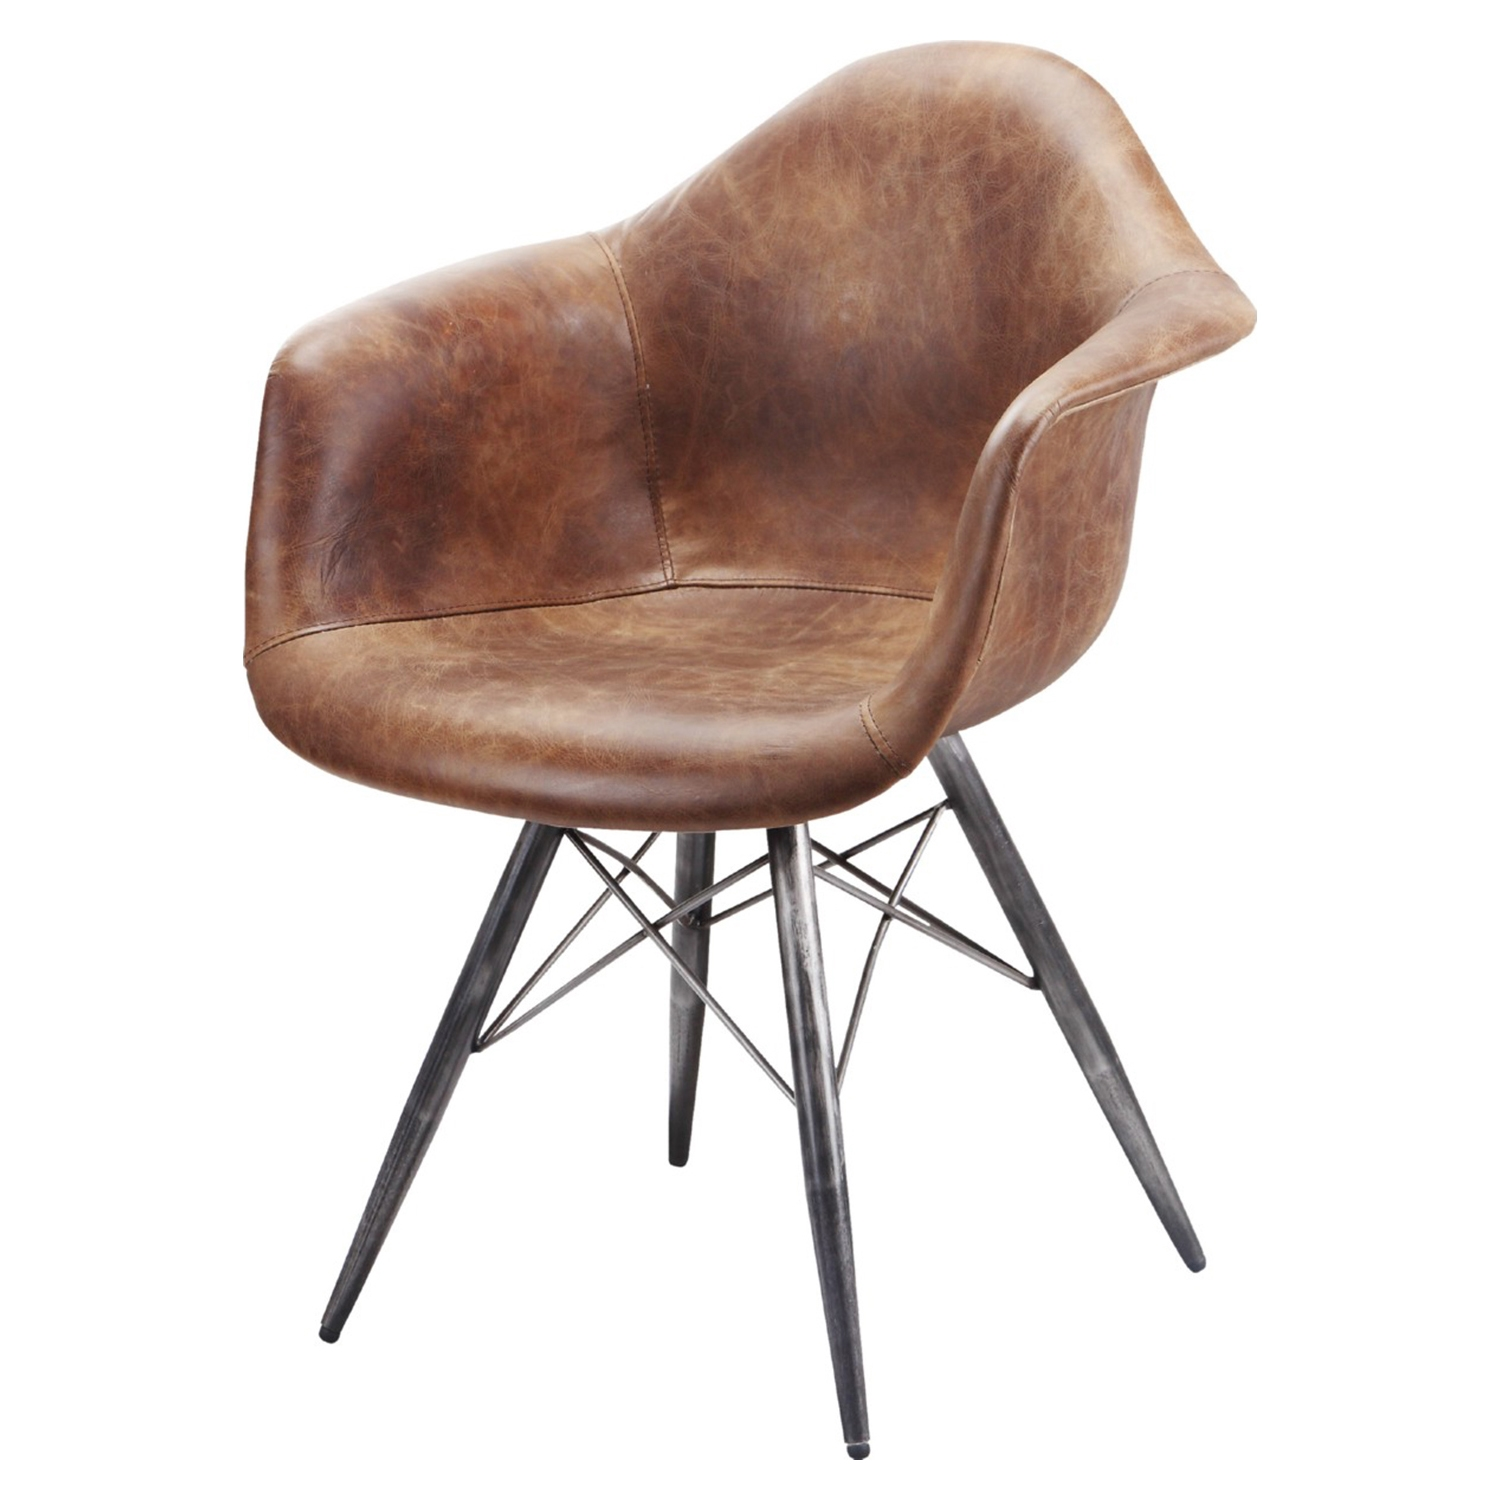 Flynn Club Chair - Light Brown - MOES-PK-1055-03